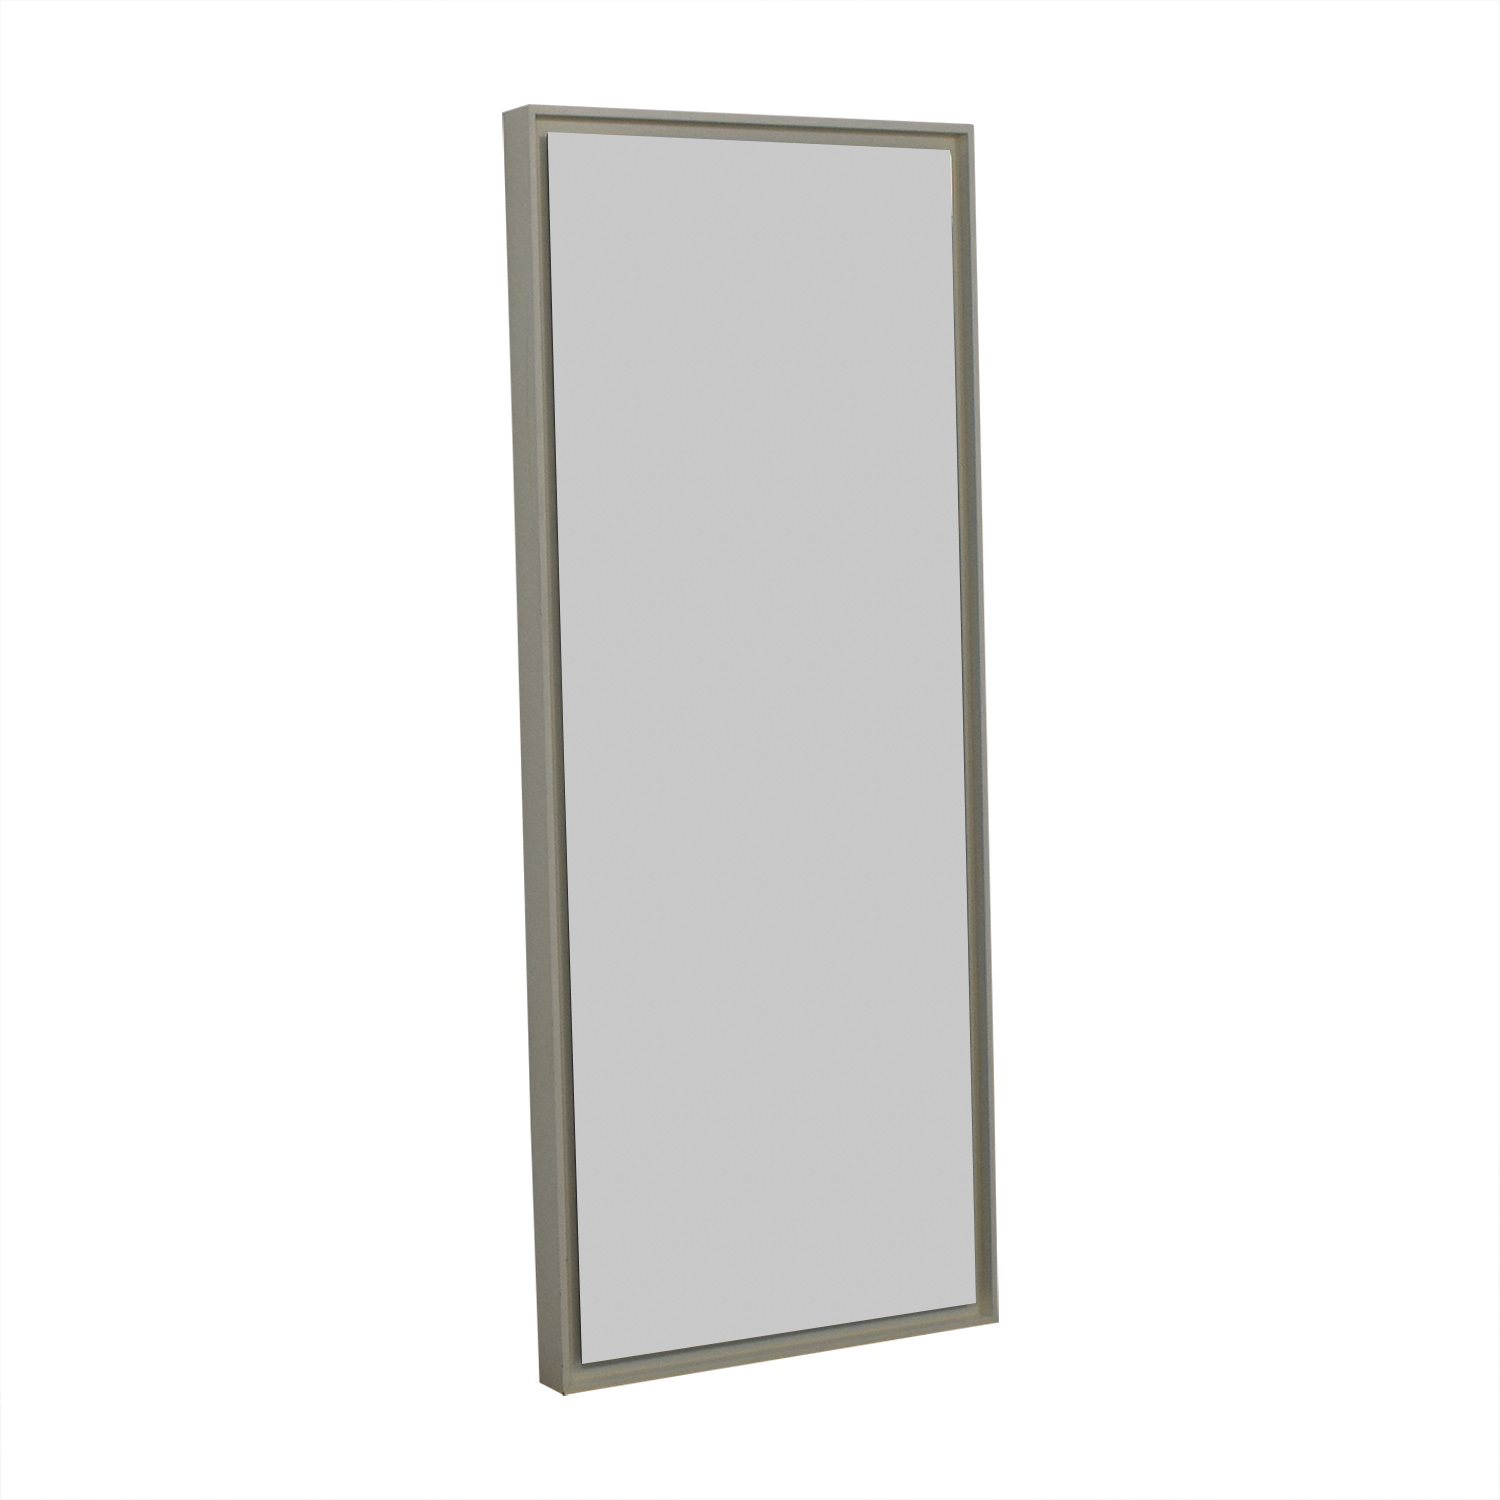 shop West Elm West Elm White Floating Mirror online